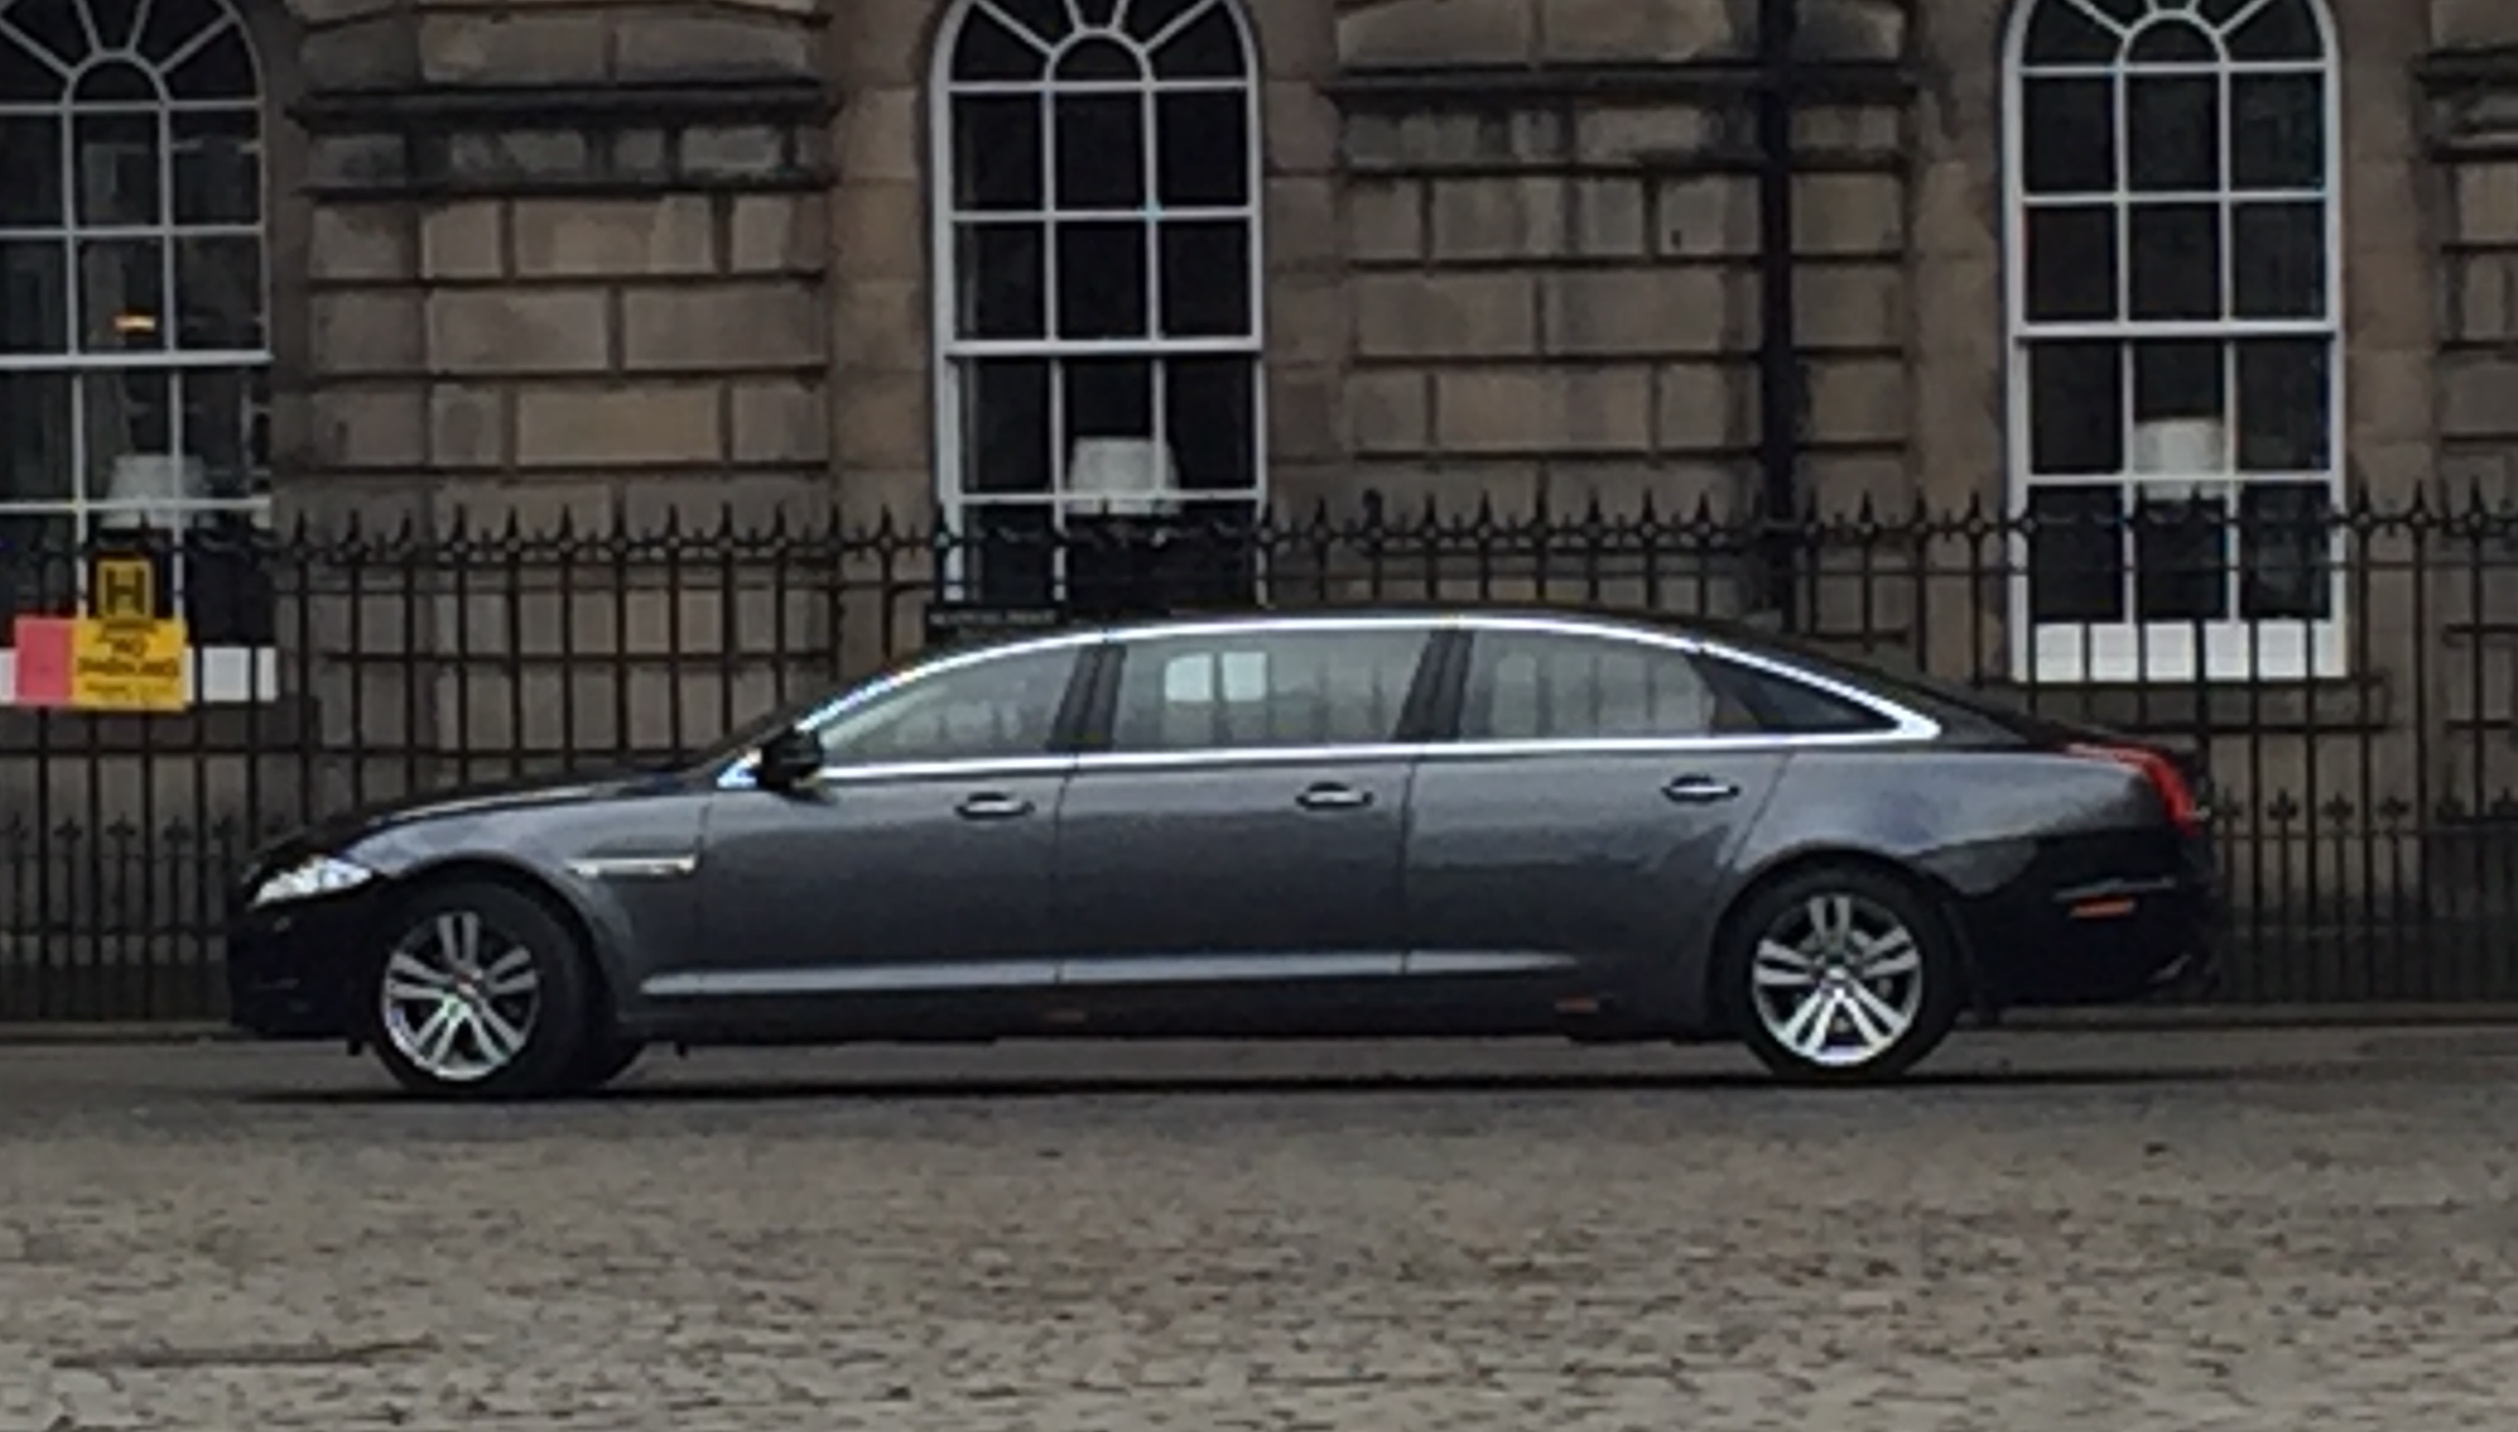 I didn't get a snap of Queen Elizabeth, but this is her stretched Jaguar XJ limo, which was more interesting in any case.